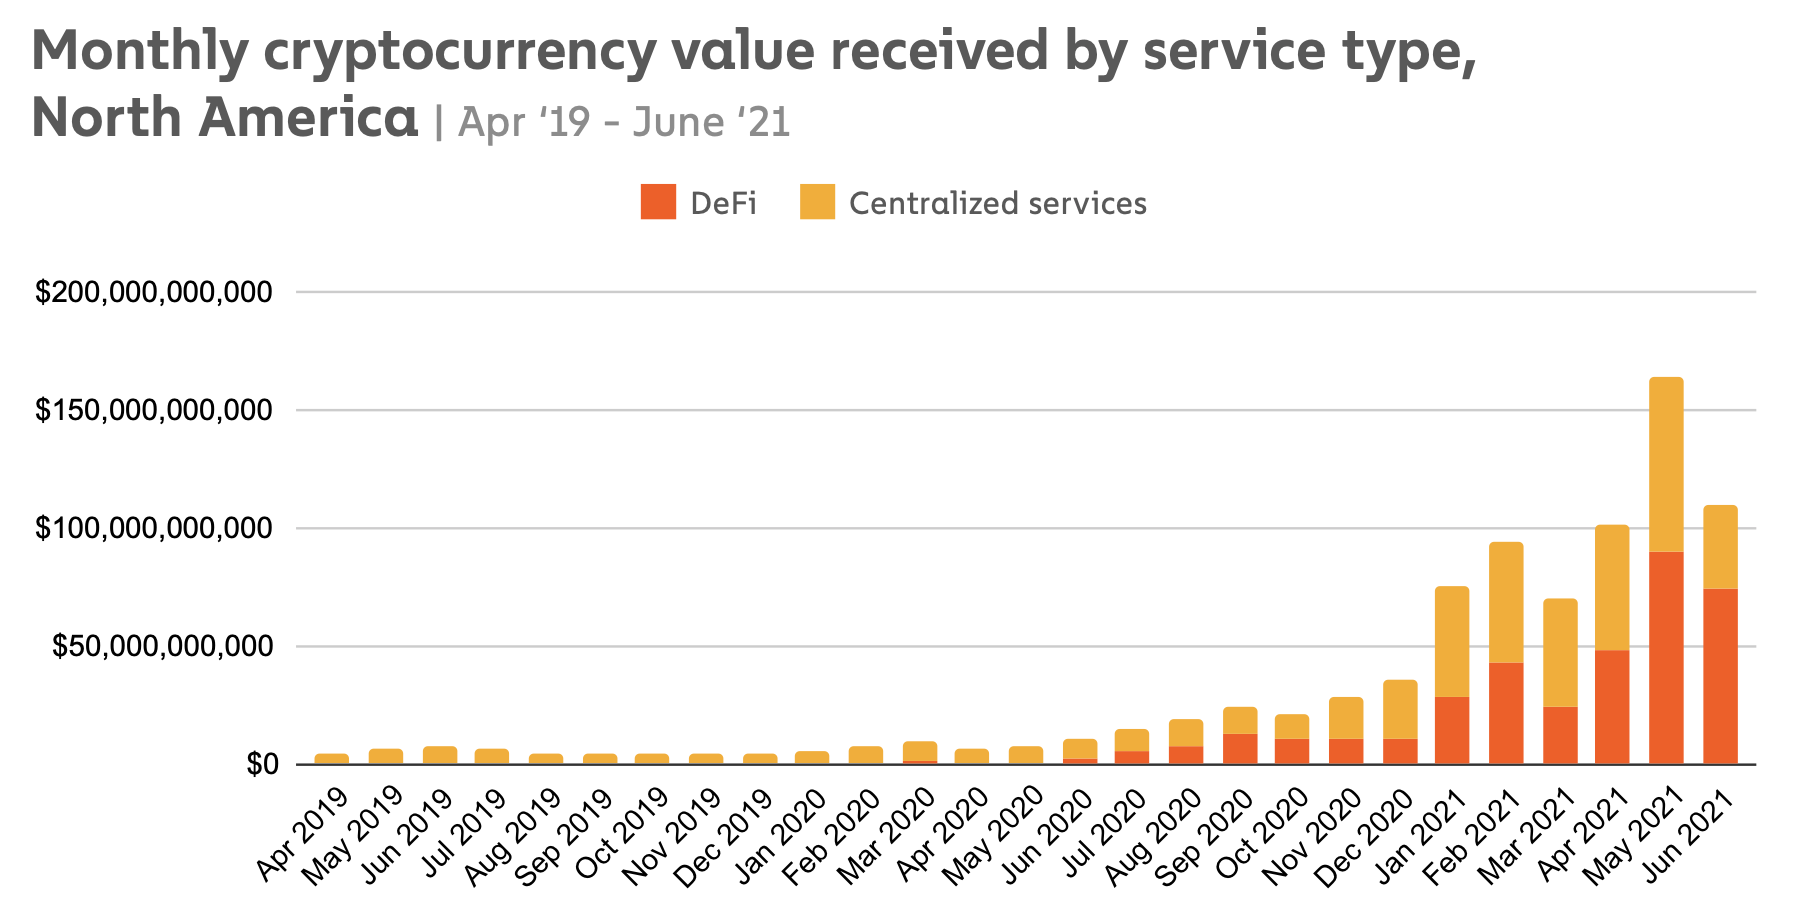 Driven by DeFi, North America's crypto volume grows 1,000% year over year